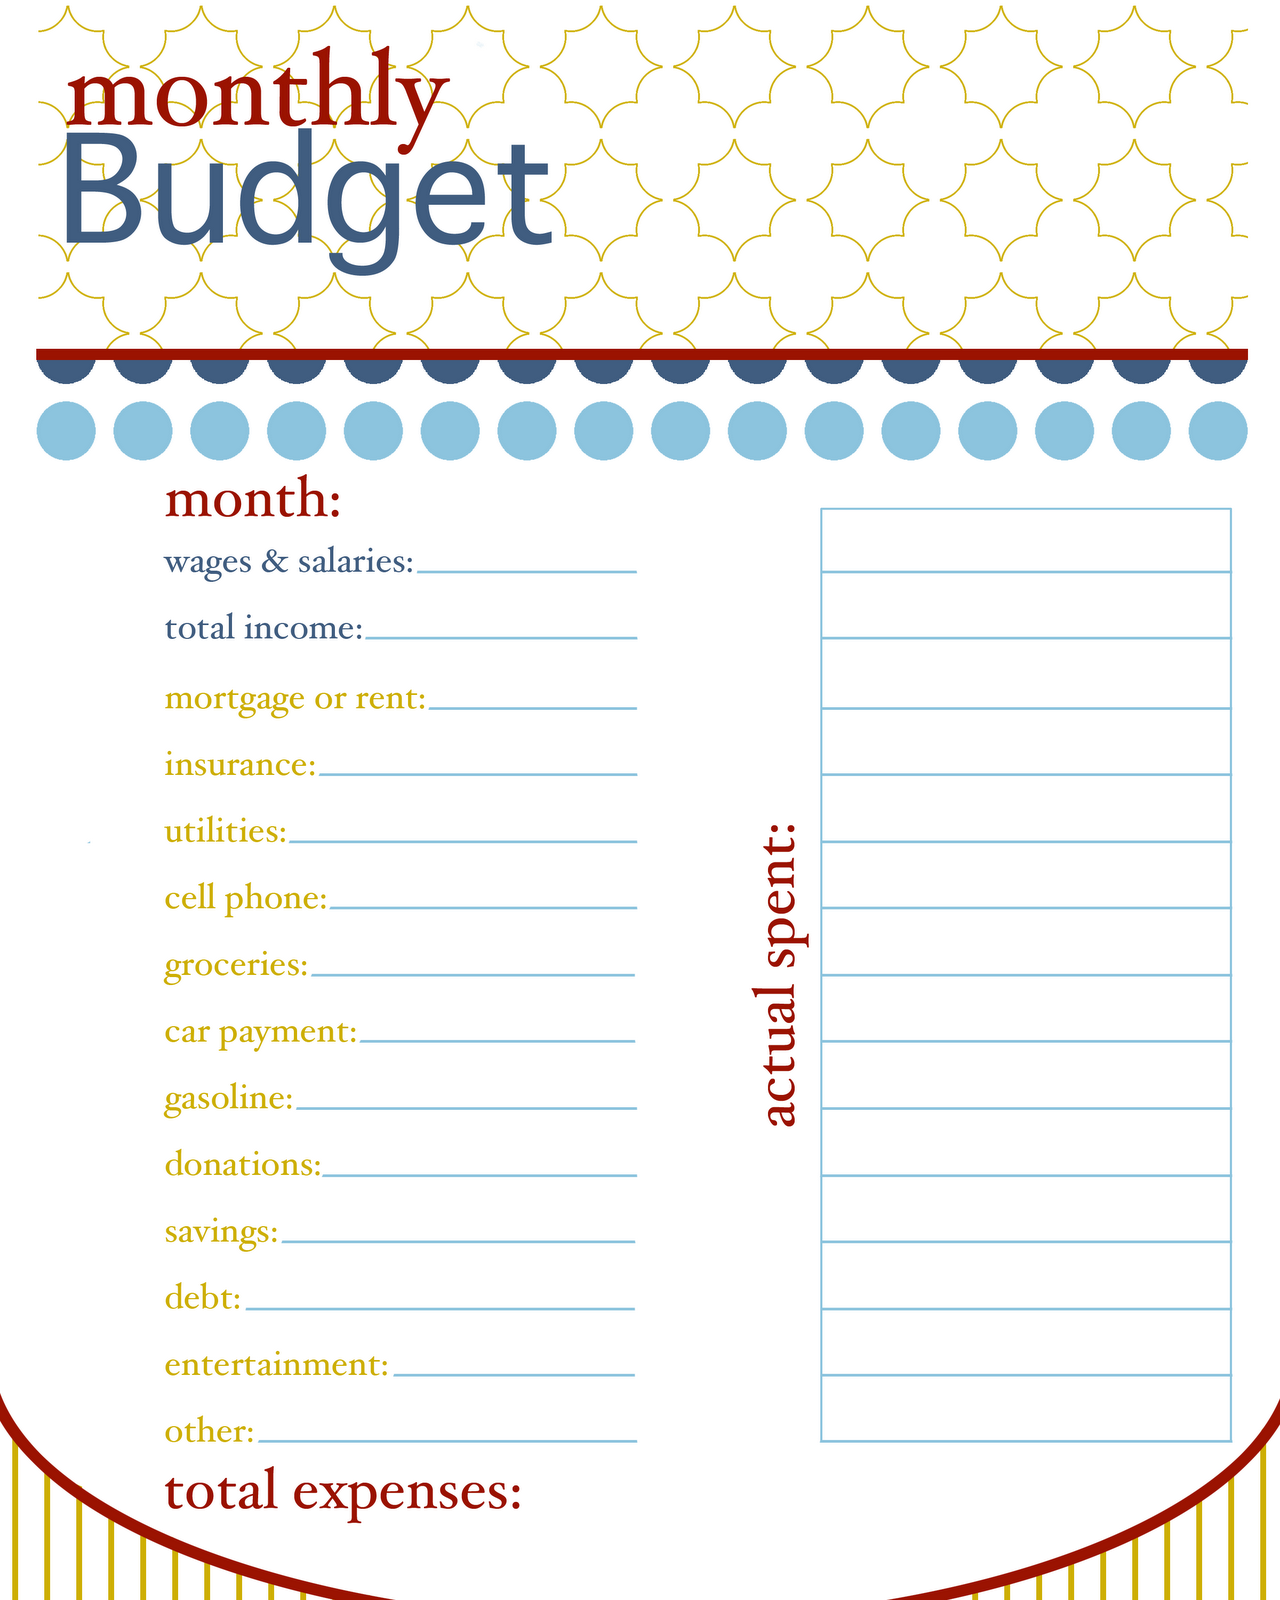 Worksheets Free Printable Budget Worksheets monthly budget printable tips and tricks pinterest printable